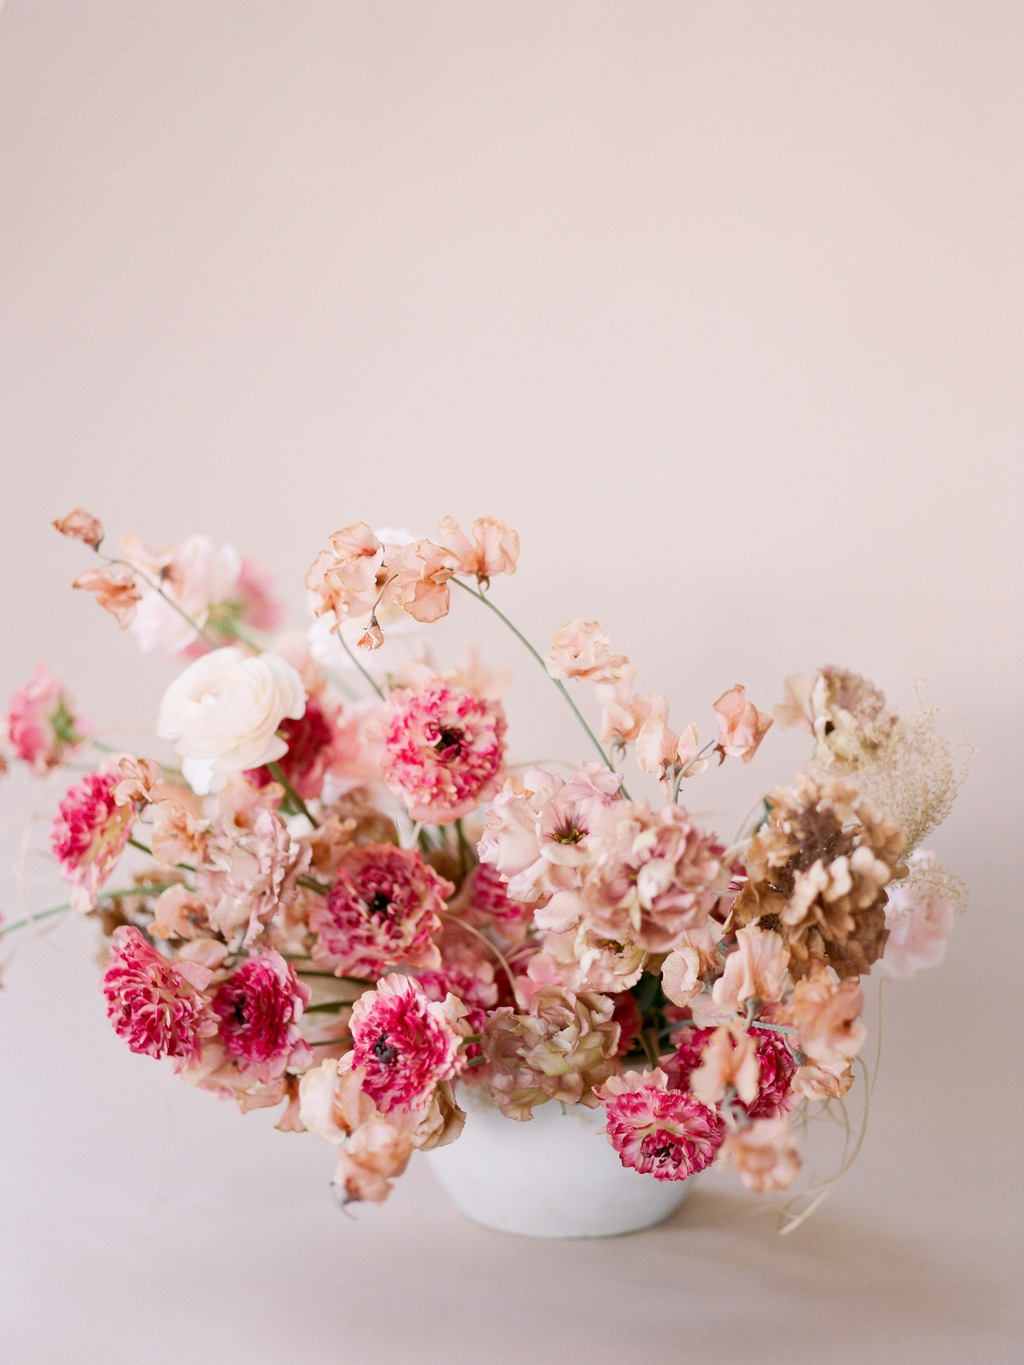 Flower Trends for Your 2019 Wedding 15 Beautiful Ideas